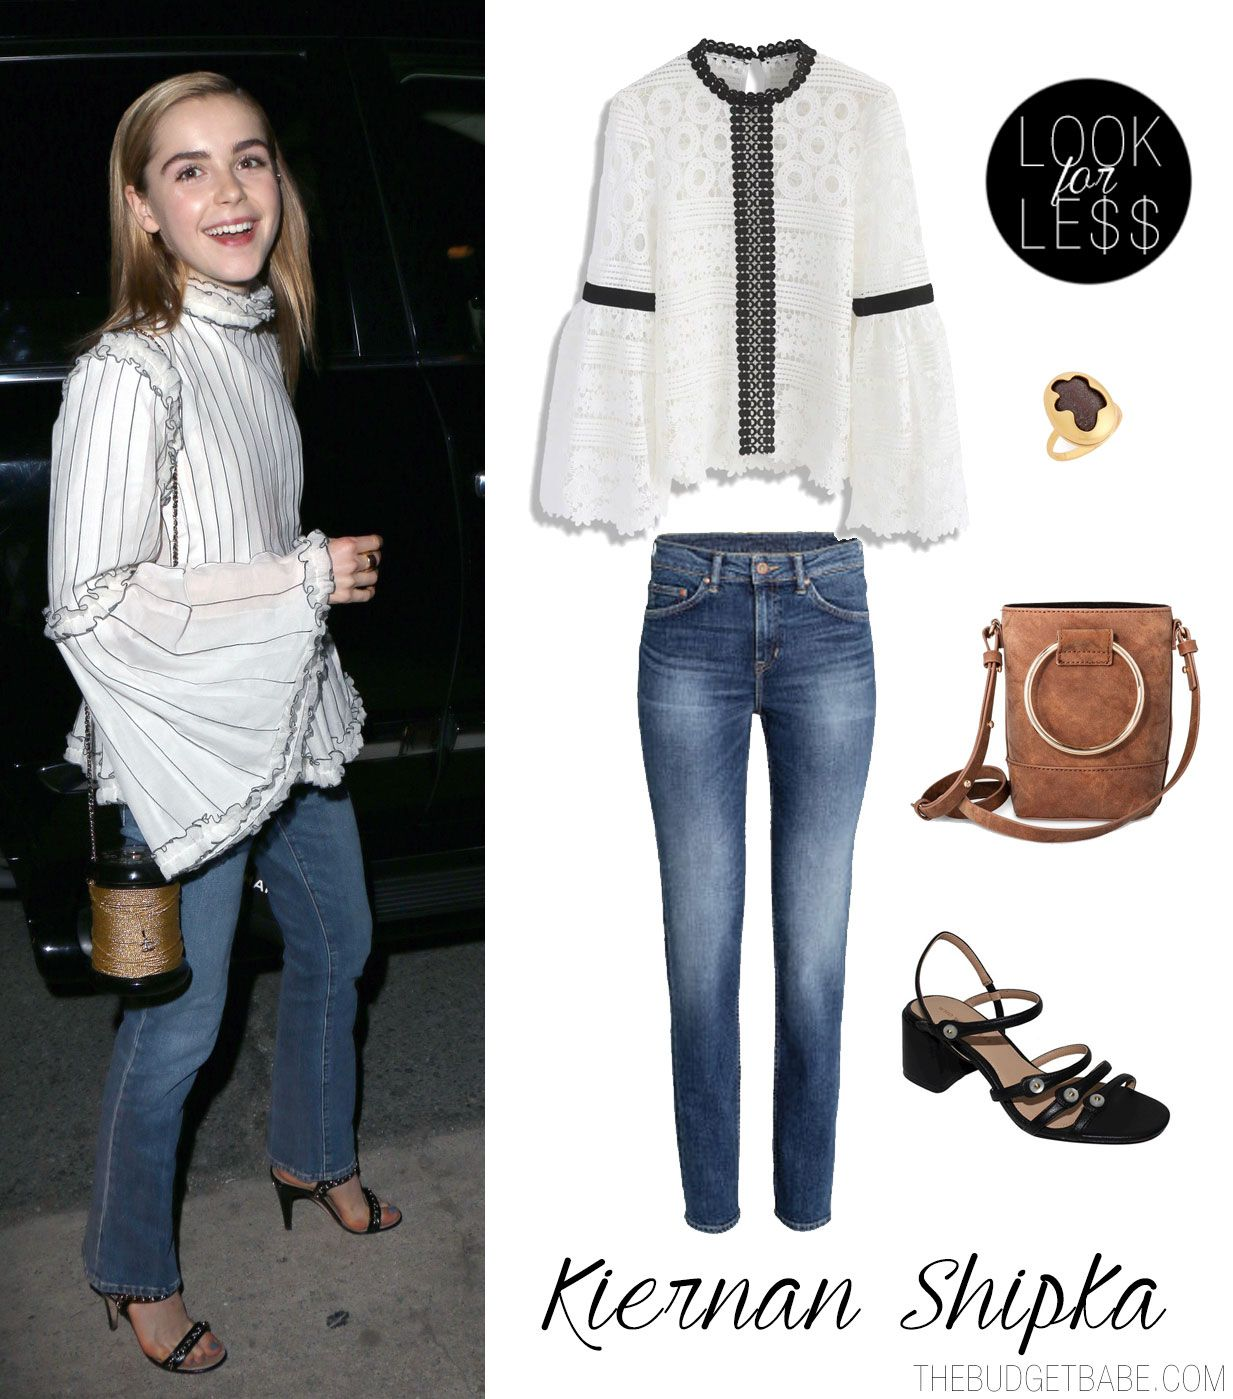 b0f85127d Kiernan Shipka's Bell Sleeve Blouse and Jeans Look for Less ...